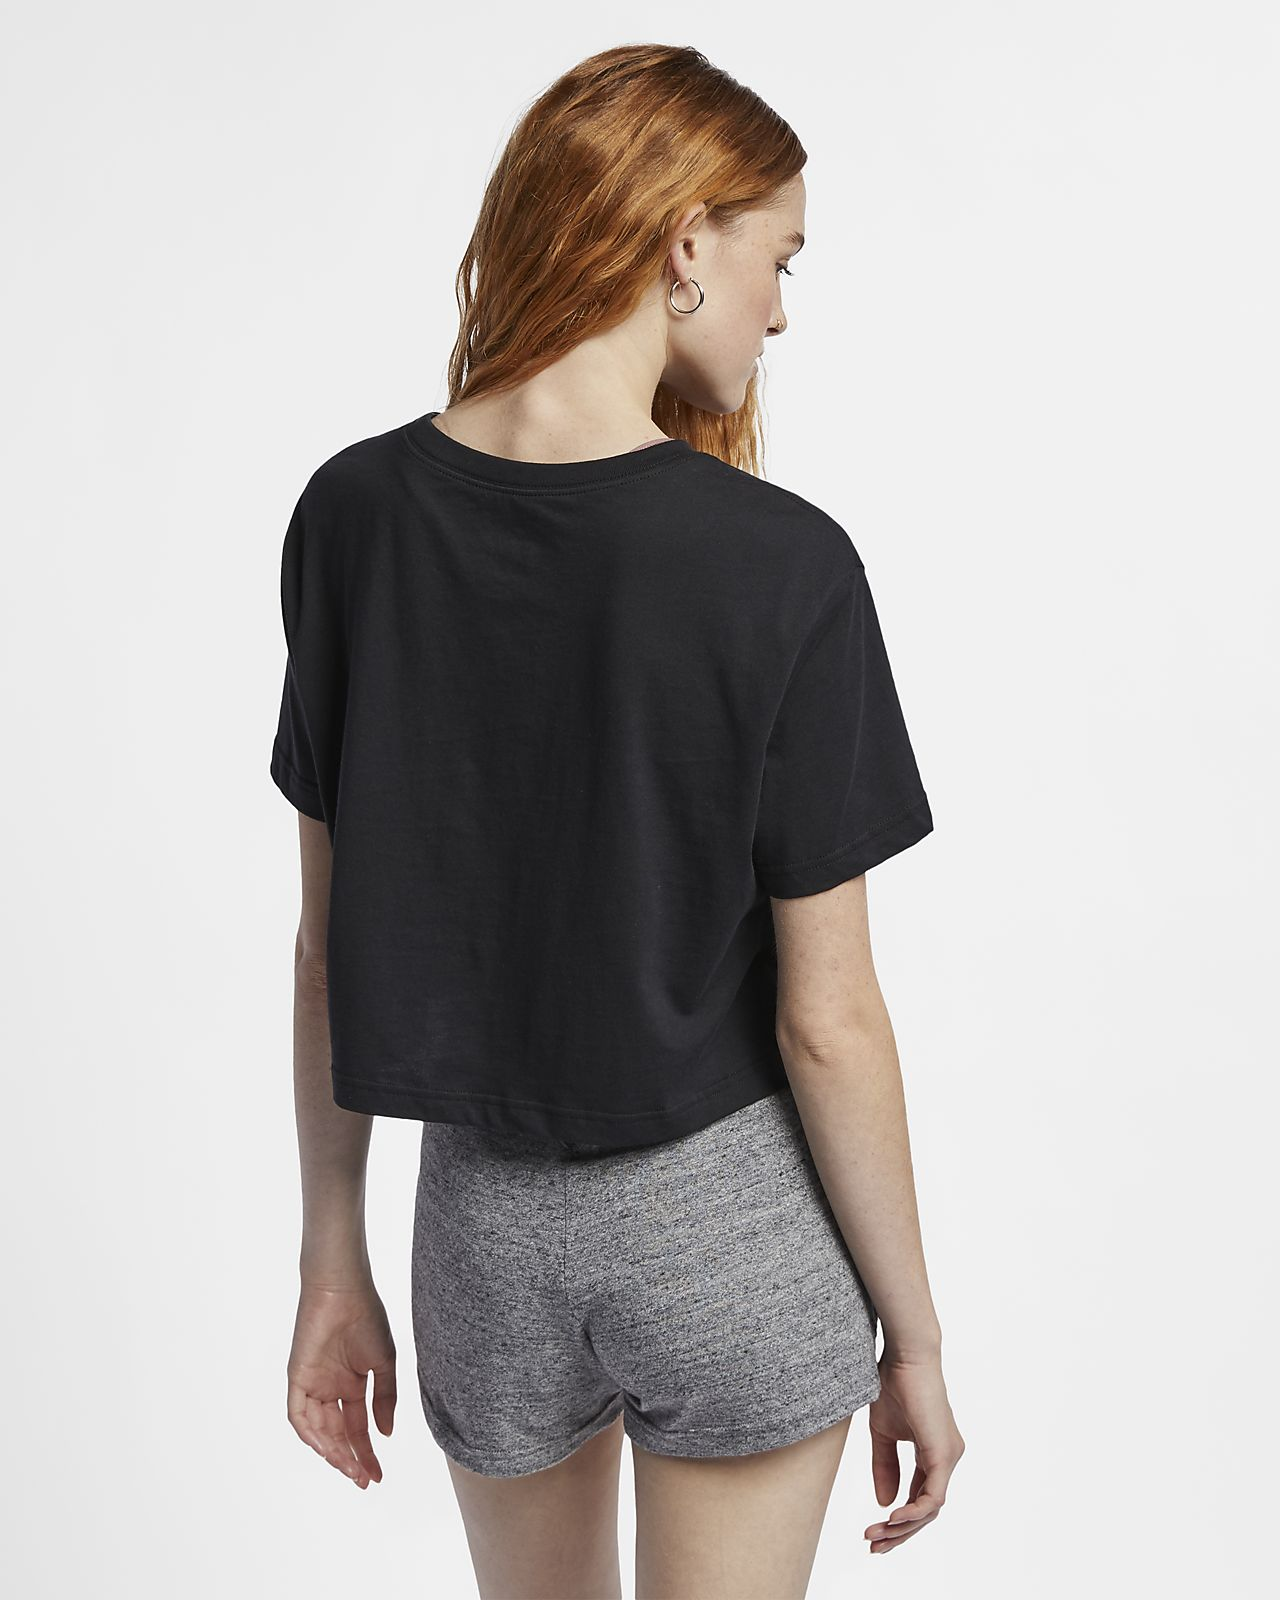 outlet on sale cheap prices wholesale price Tee-shirt court Nike Sportswear Essential pour Femme